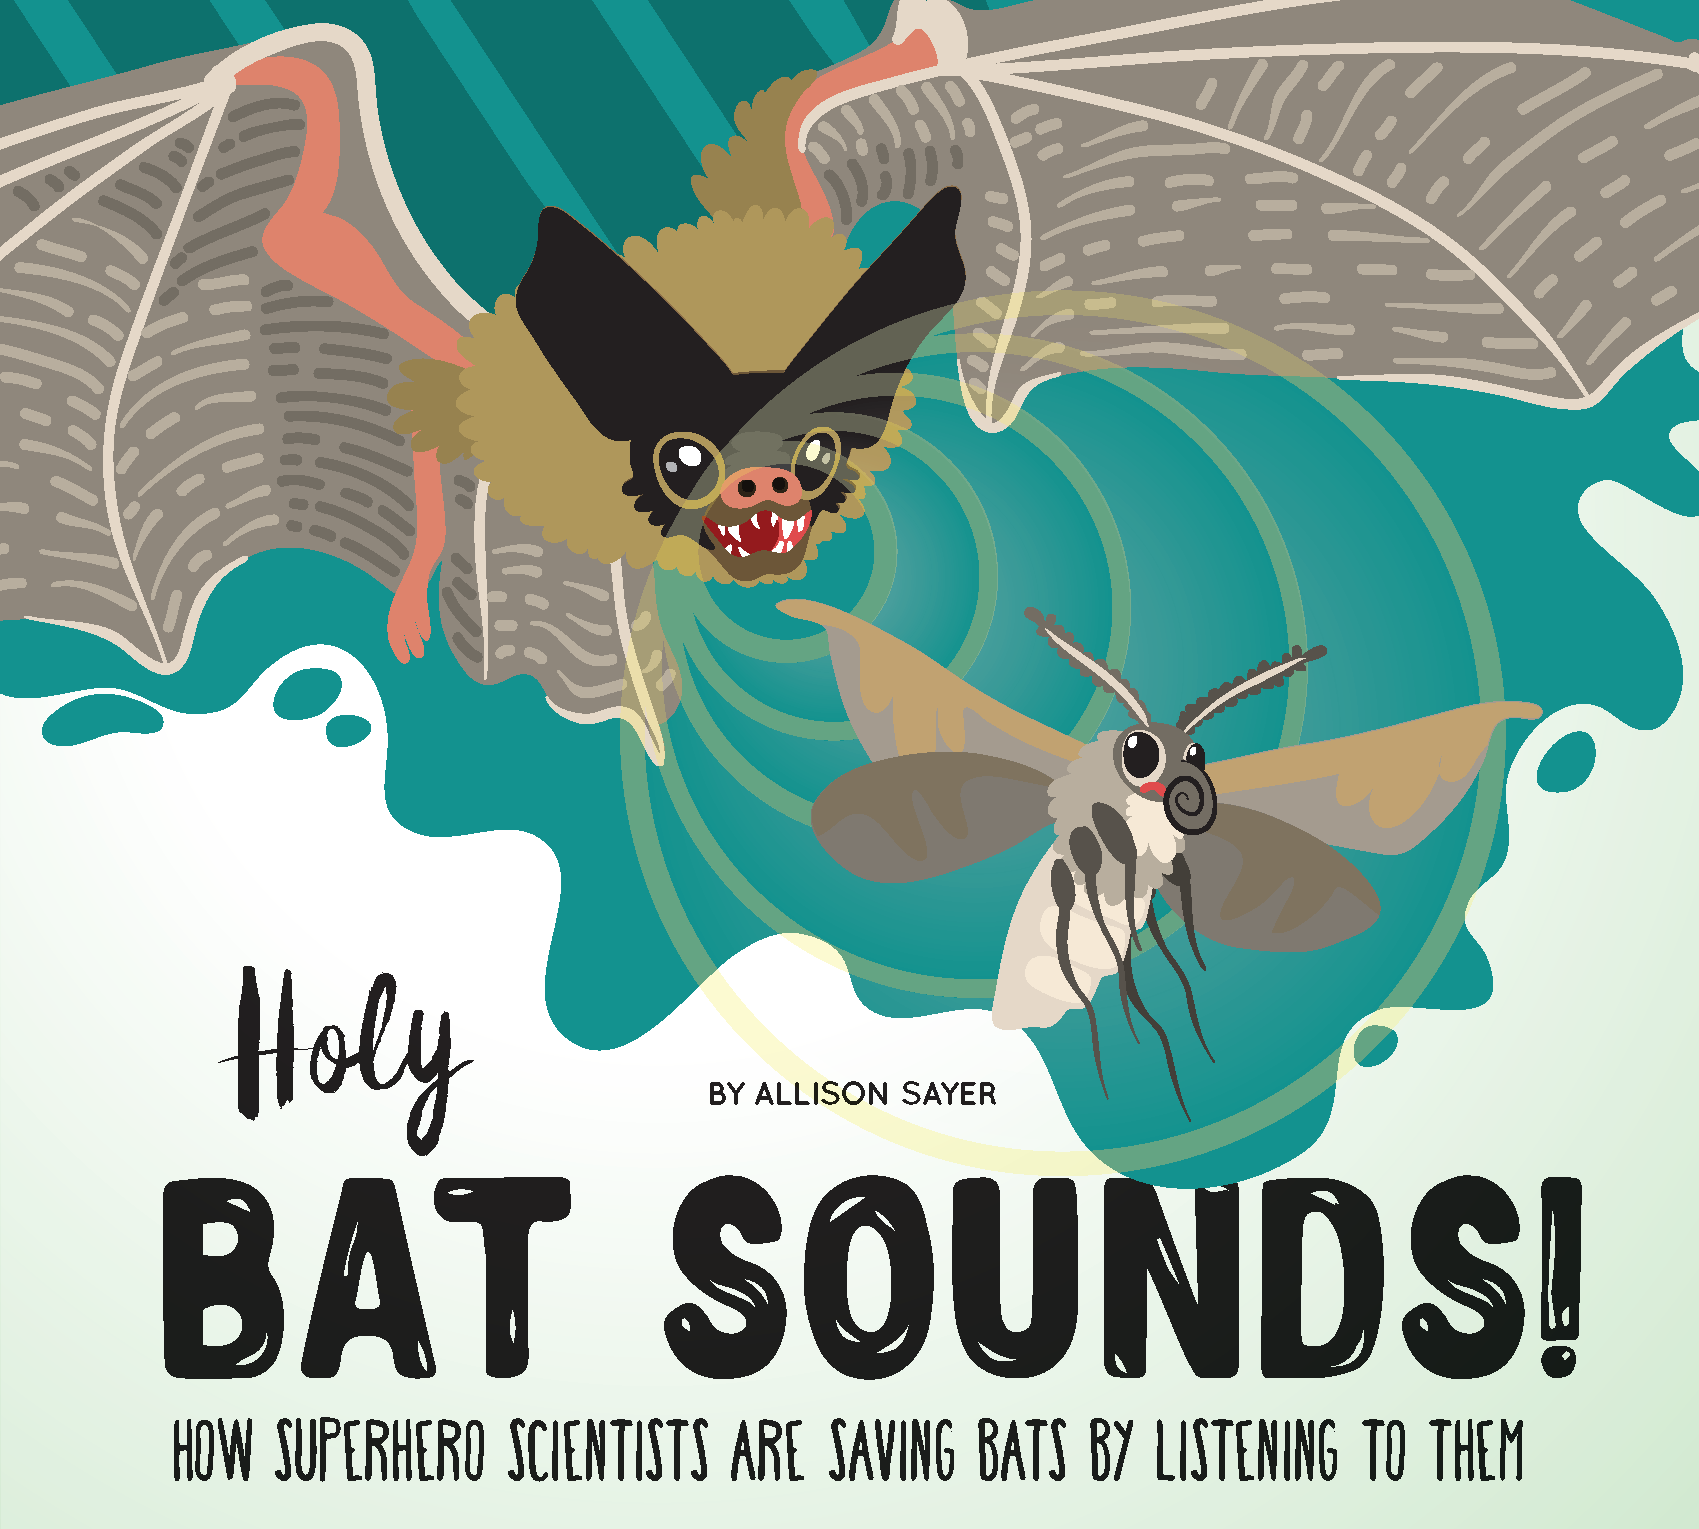 How Superhero Scientists Are Saving Bats By Listening To Them